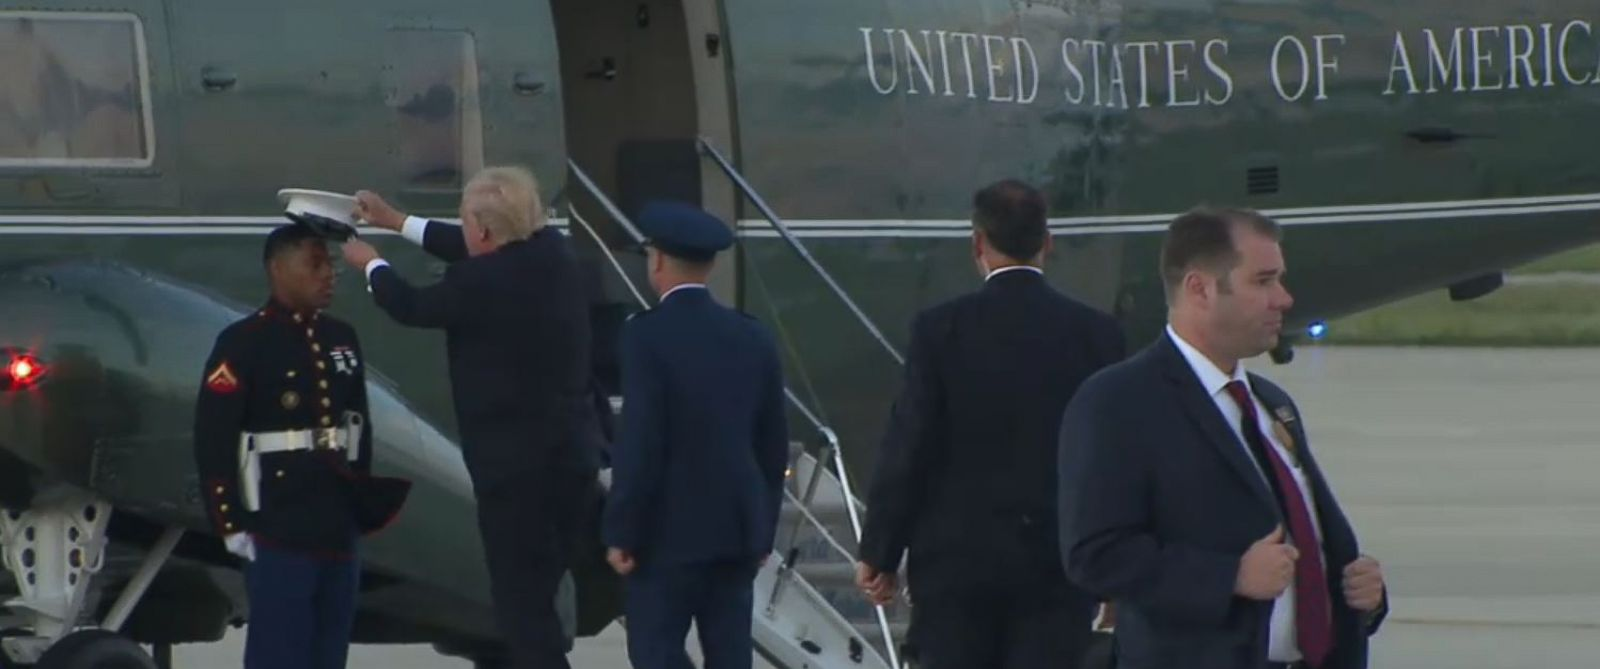 Trump stops to pick up Marine's hat blown away by the wind ...